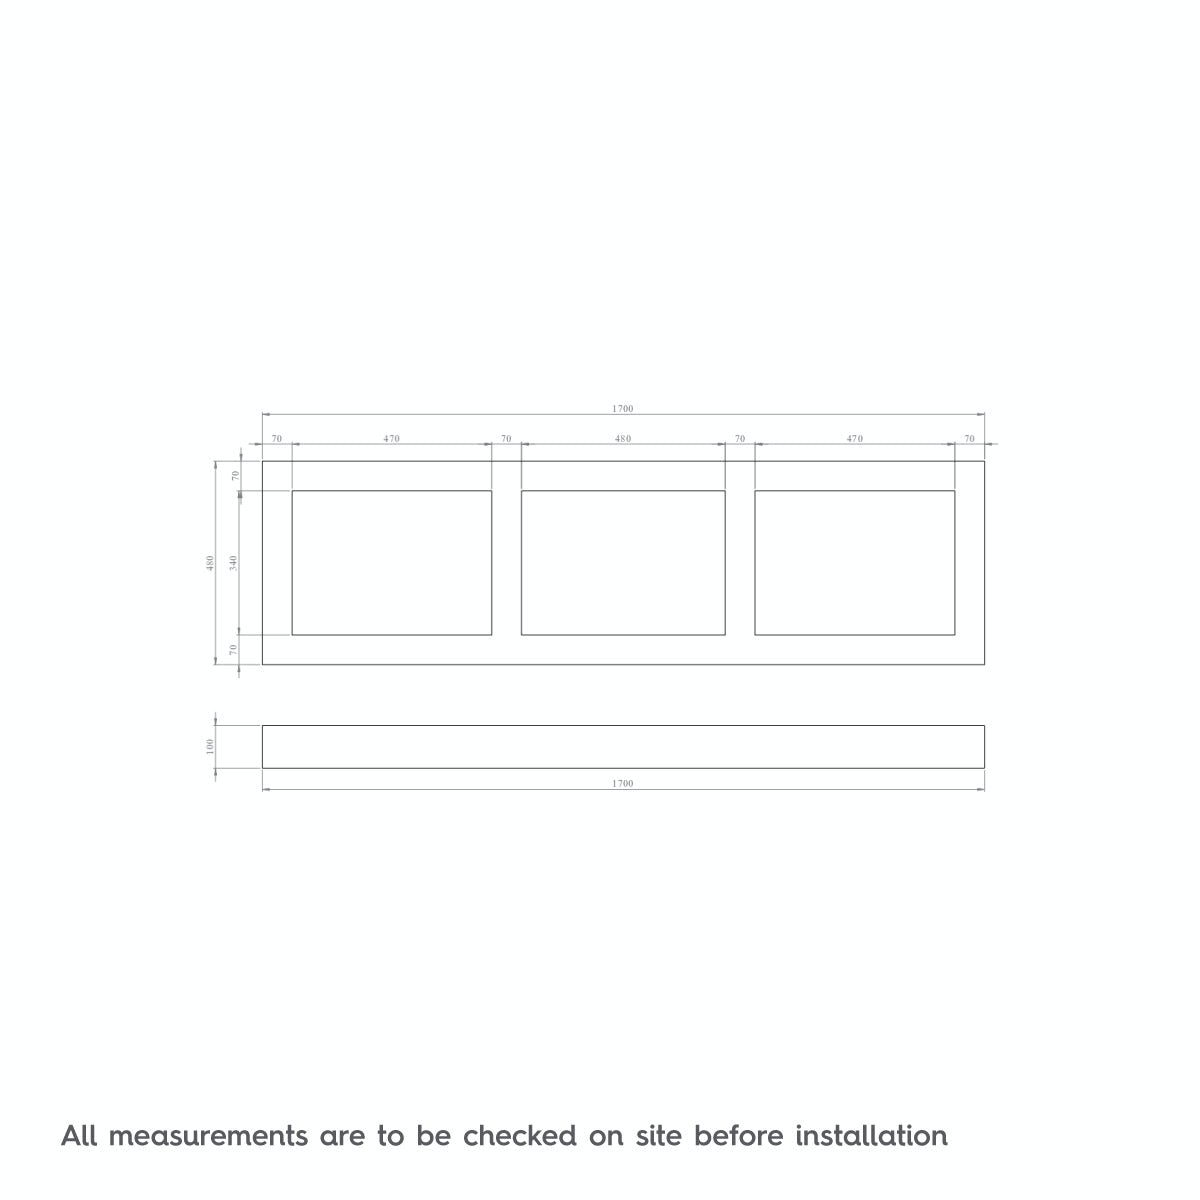 Dimensions for The Bath Co. Camberley sage wooden straight bath front panel 1700mm